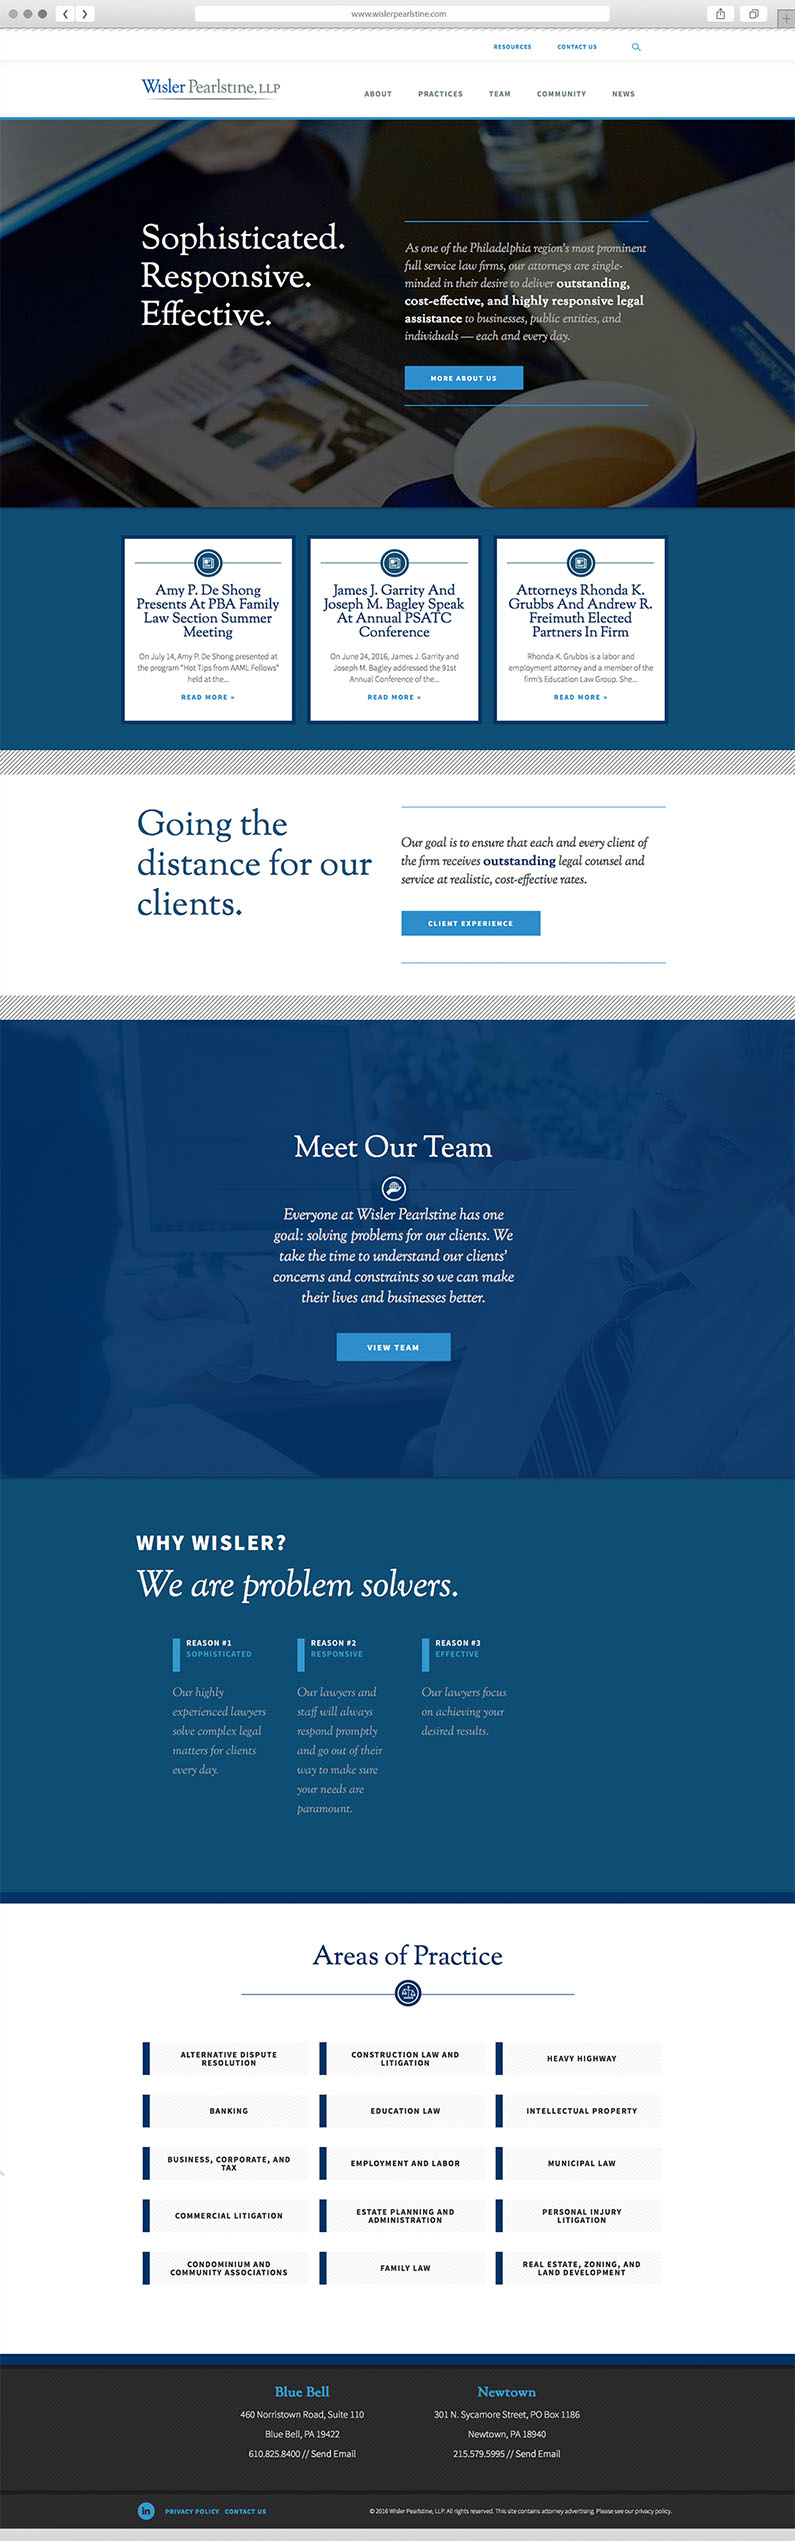 wisler pearlstine, wisler pearlstine website, philadelphia web design, philadelphia branding, push10, responsive web design, legal web design, legal marketing, website for law firm